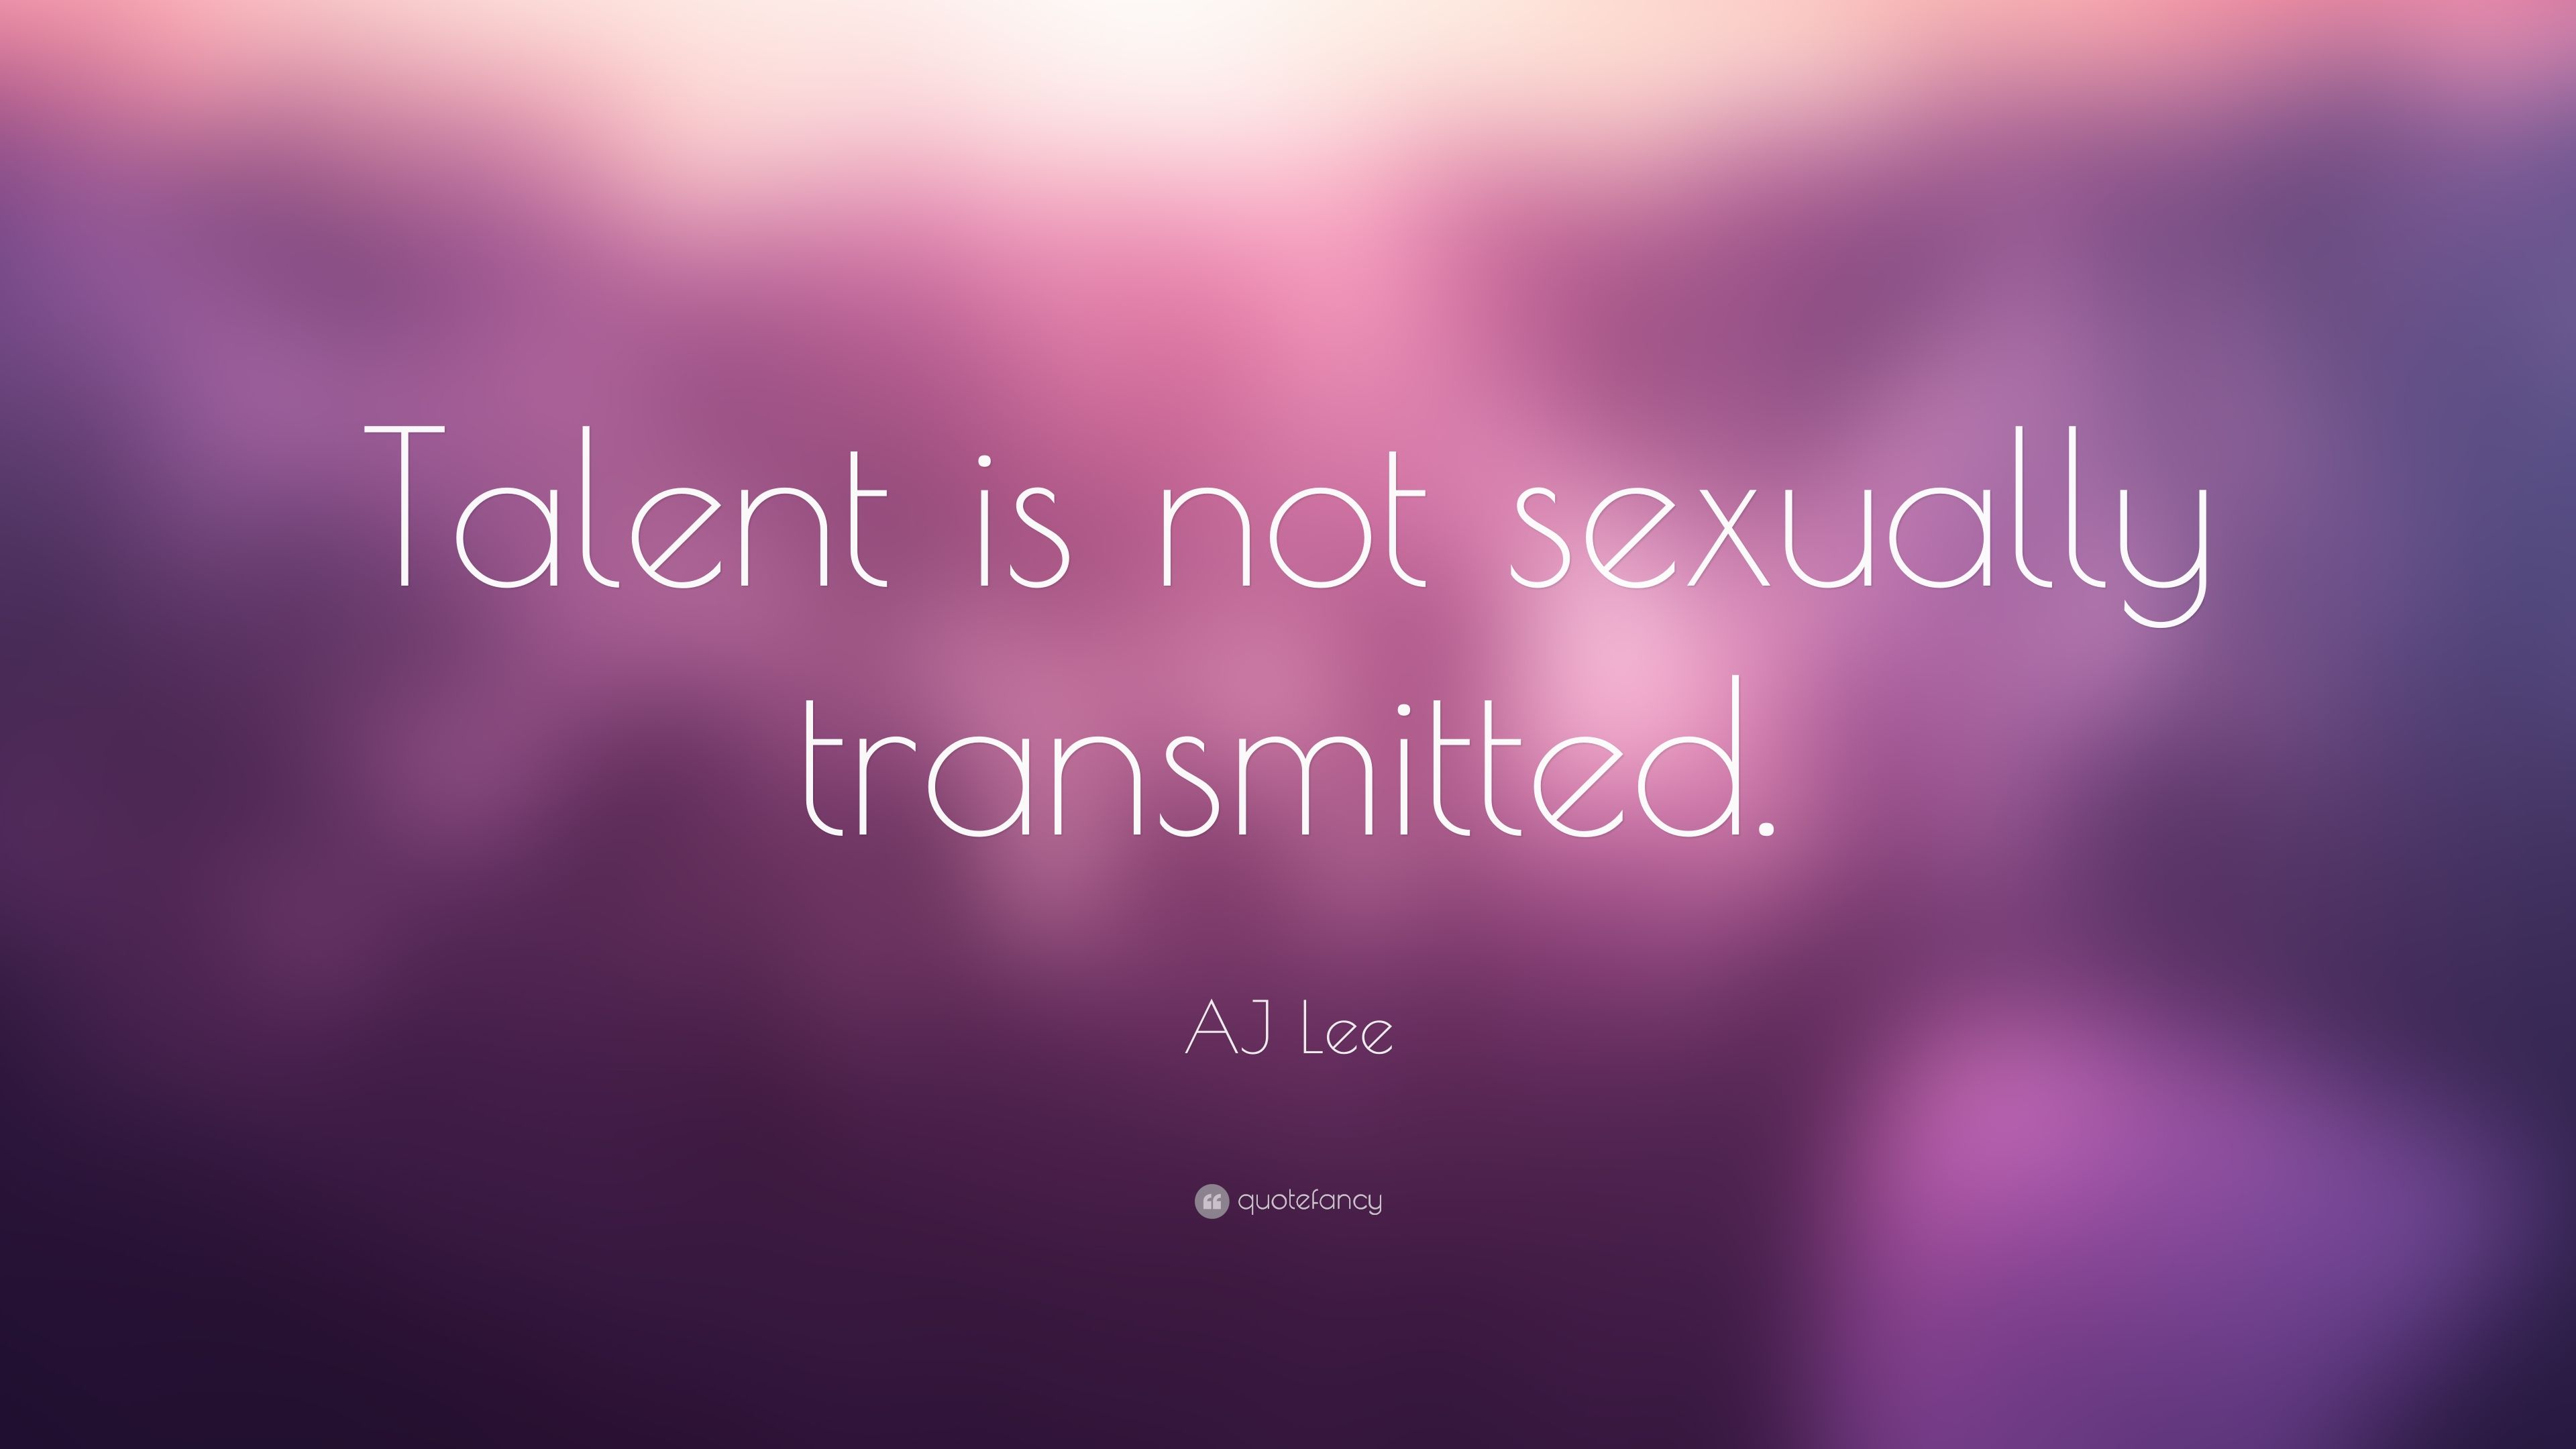 Aj lee talent is not sexually transmitted